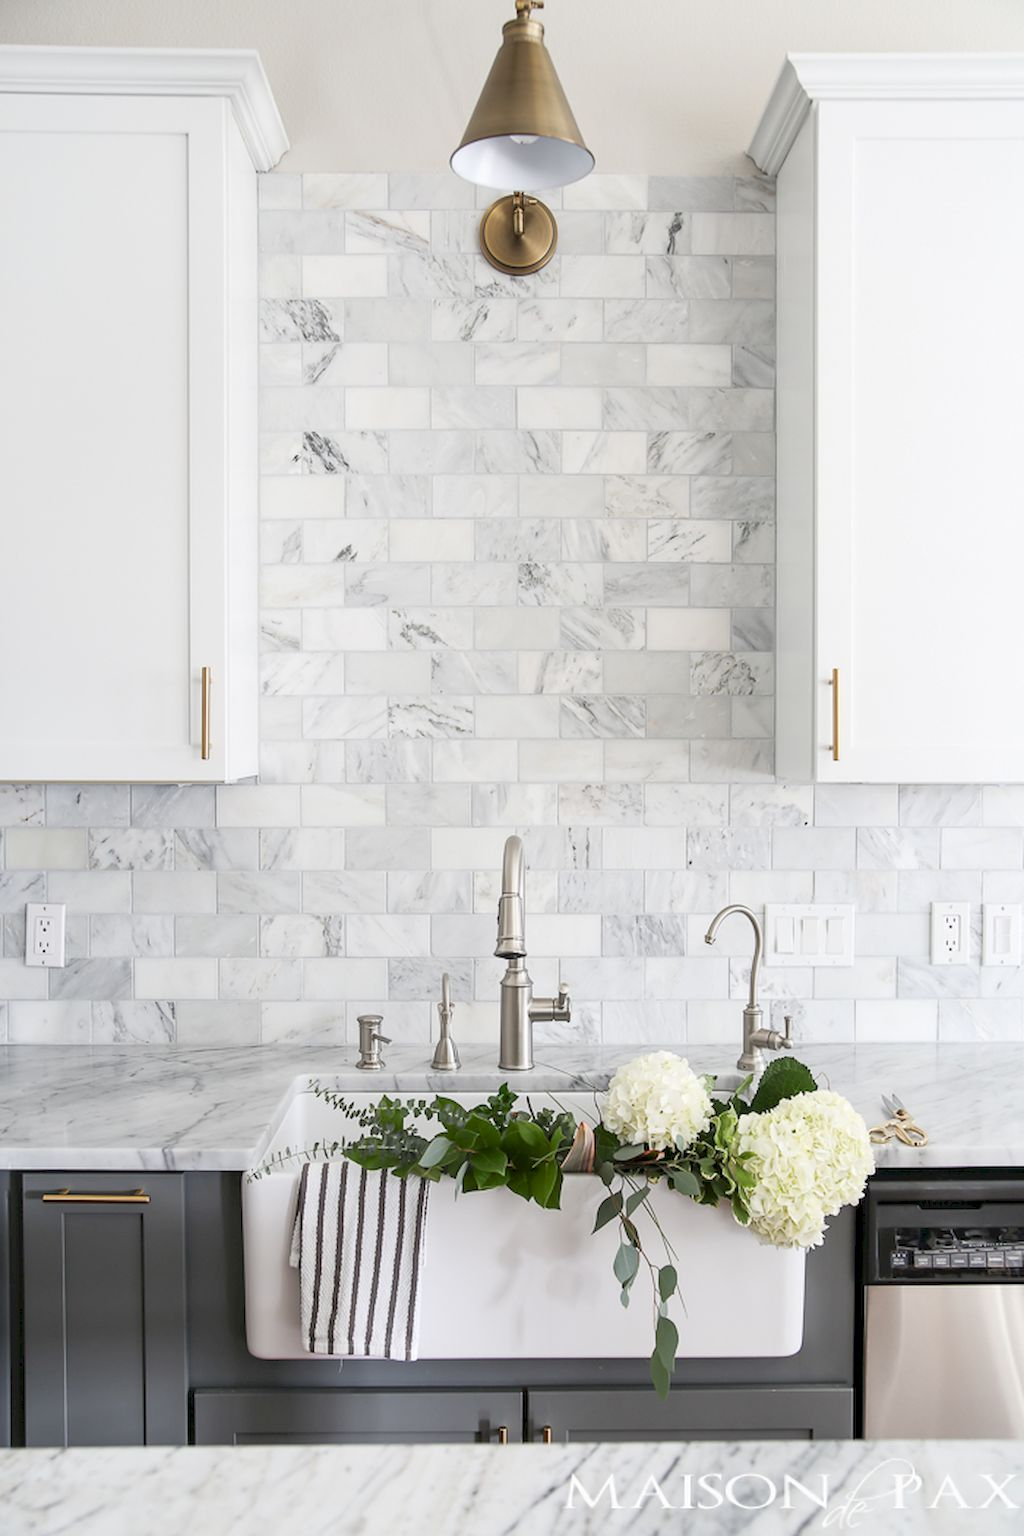 Cool 40 Stunning Kitchen Backsplash Decorating Ideas  Https://roomadness.com/2017